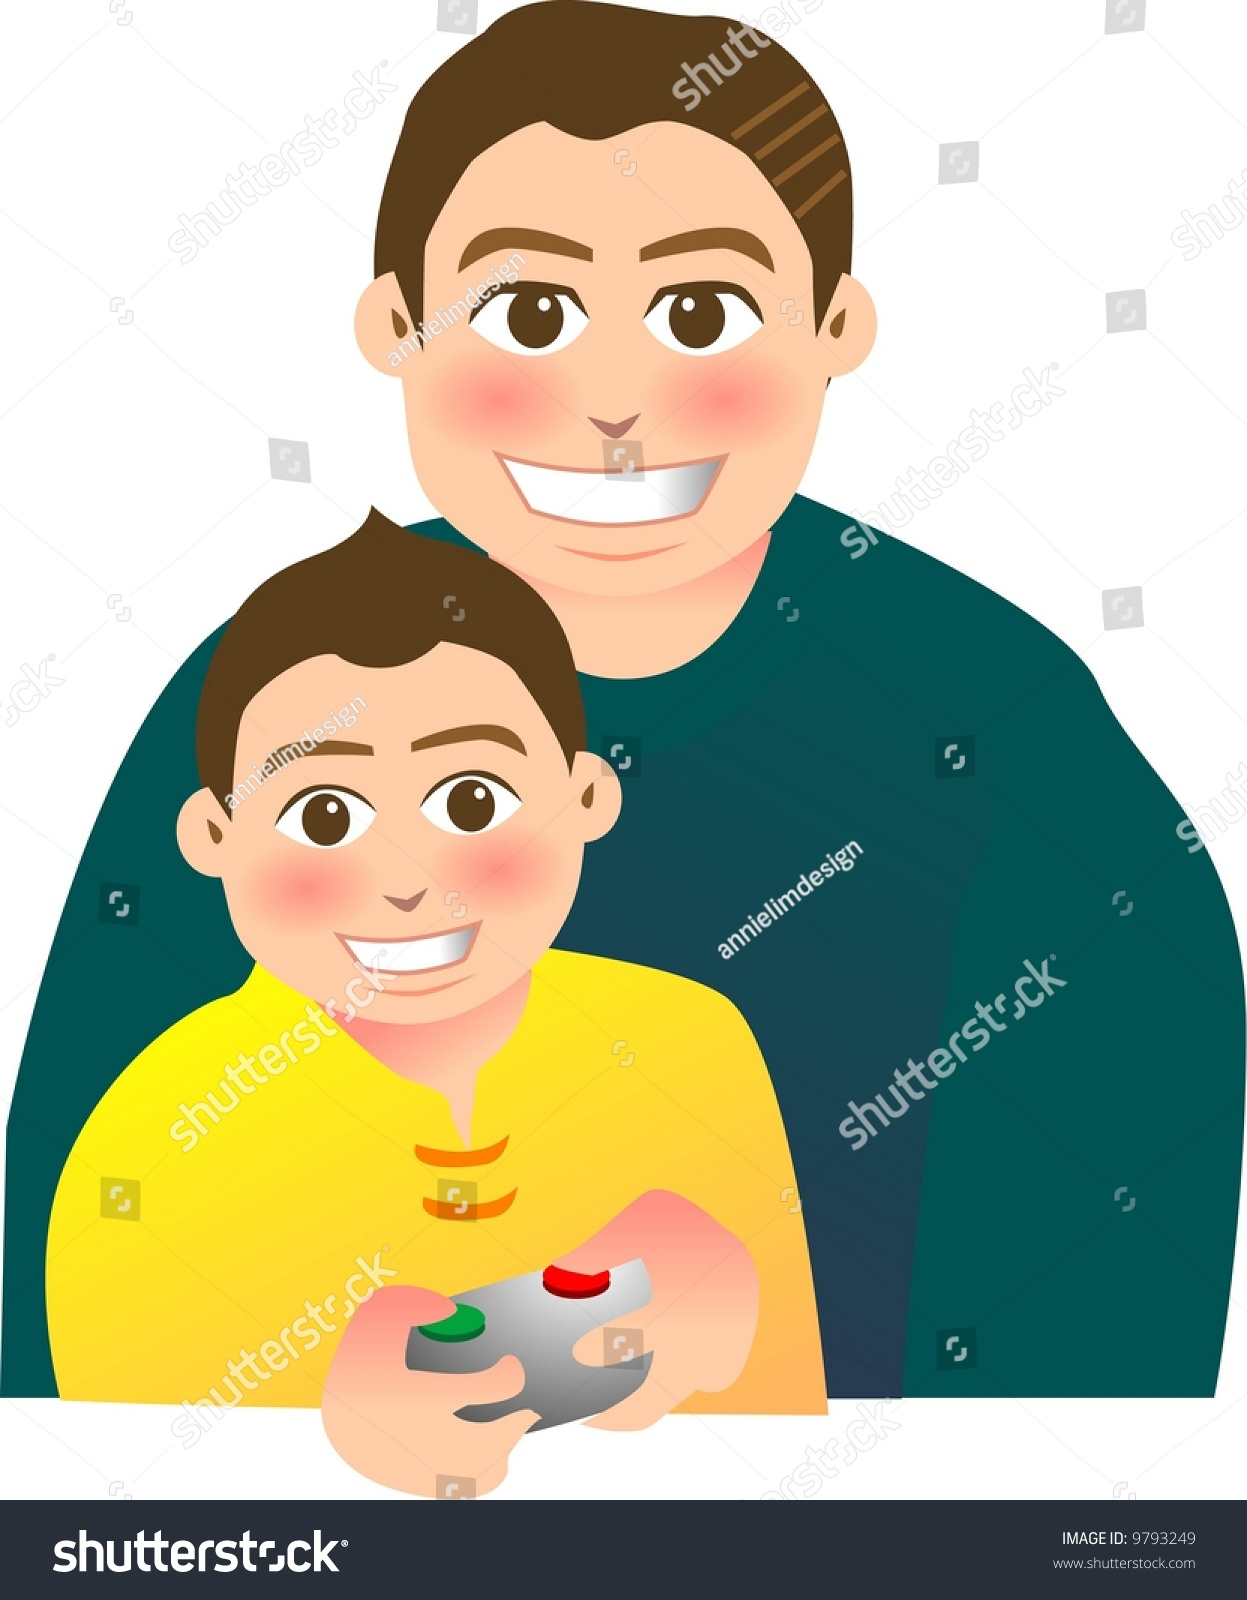 father and son relationship video game